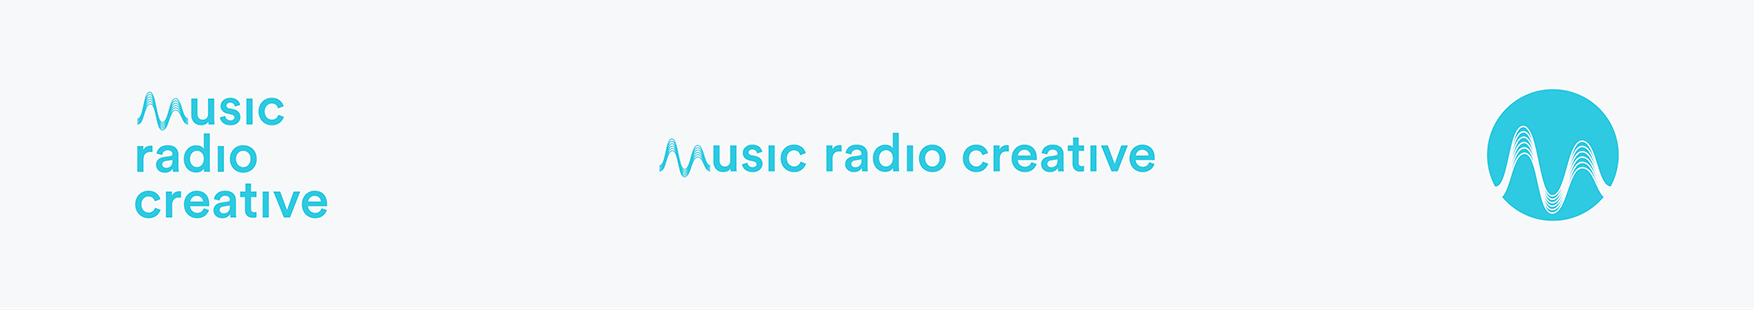 music-radio-creative-brand-03.png